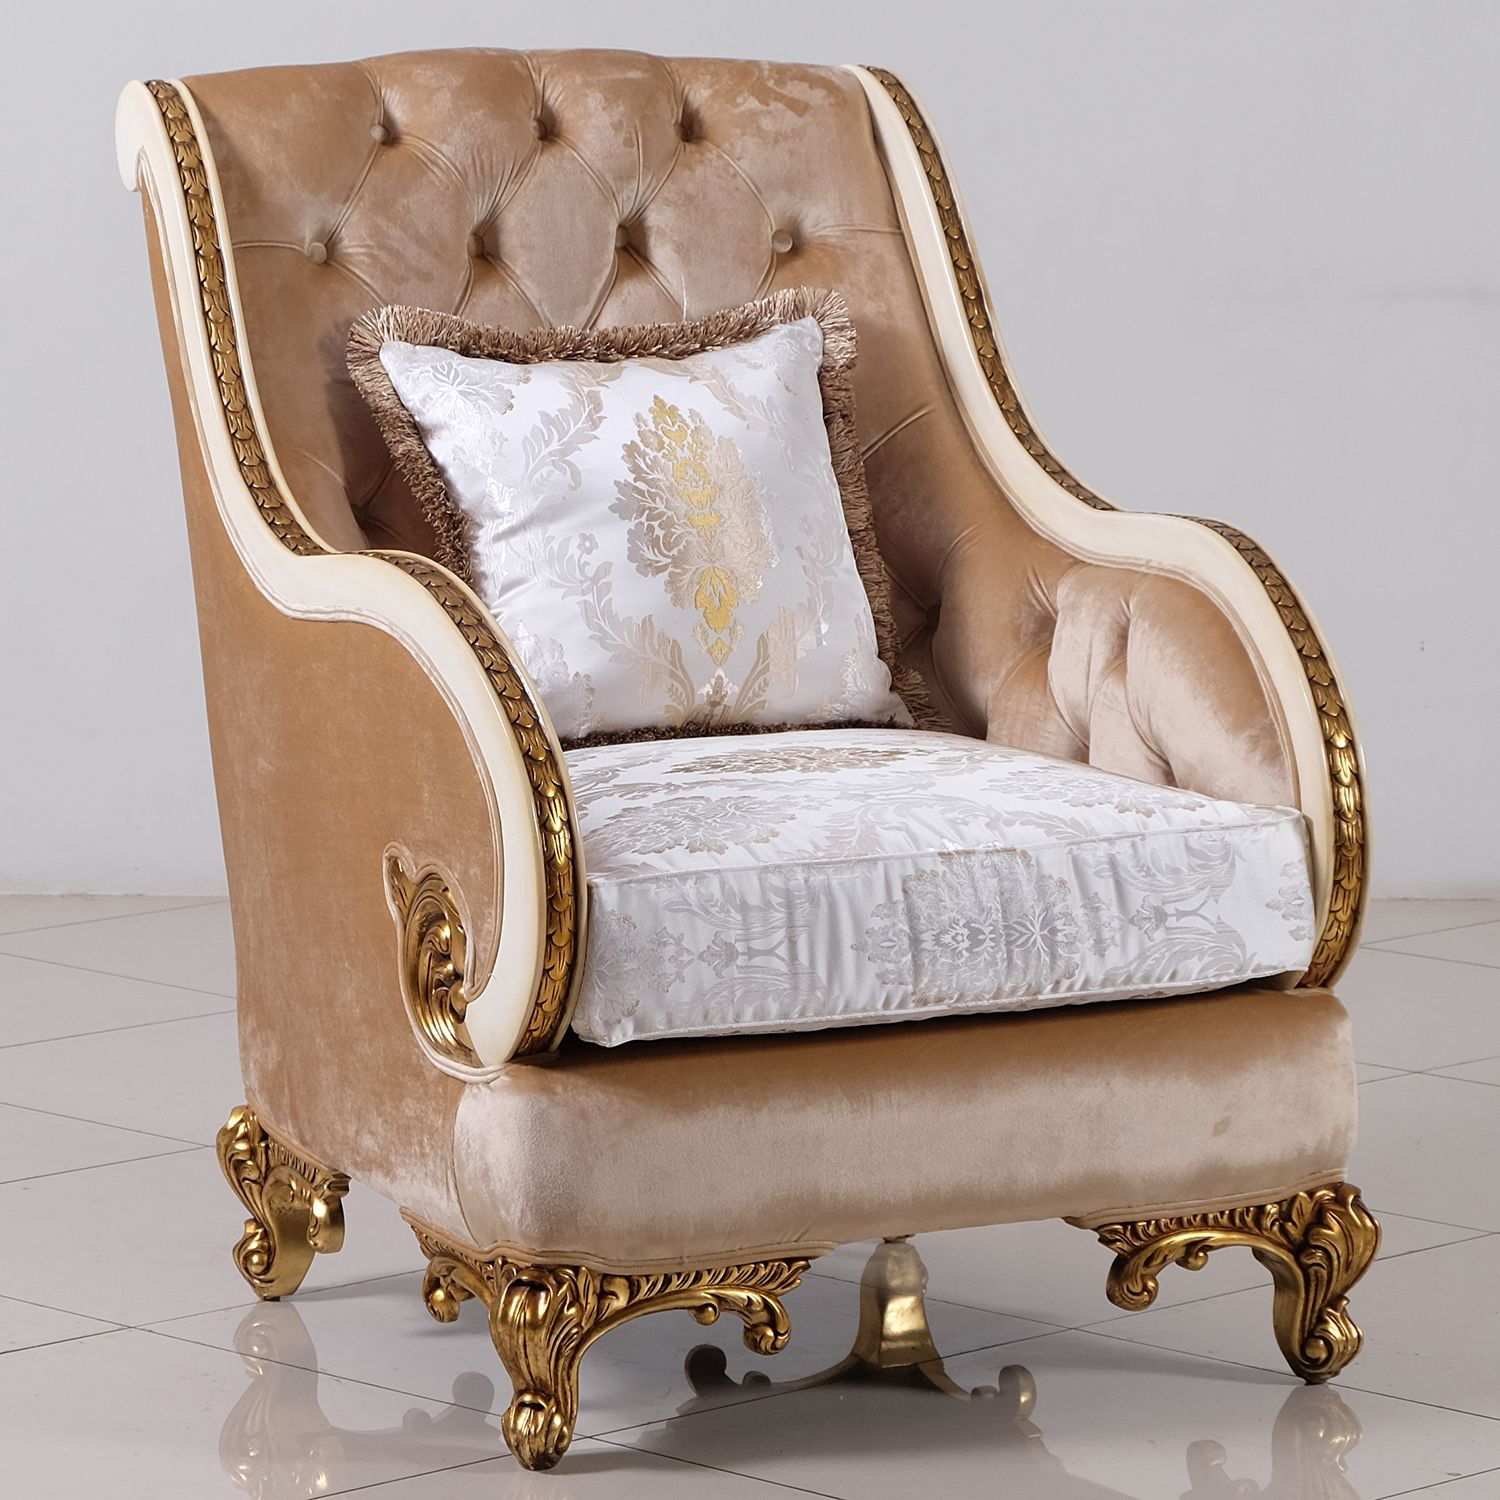 Rosabella Arm Chair in Tufted Fabric on Beige & Dark Gold